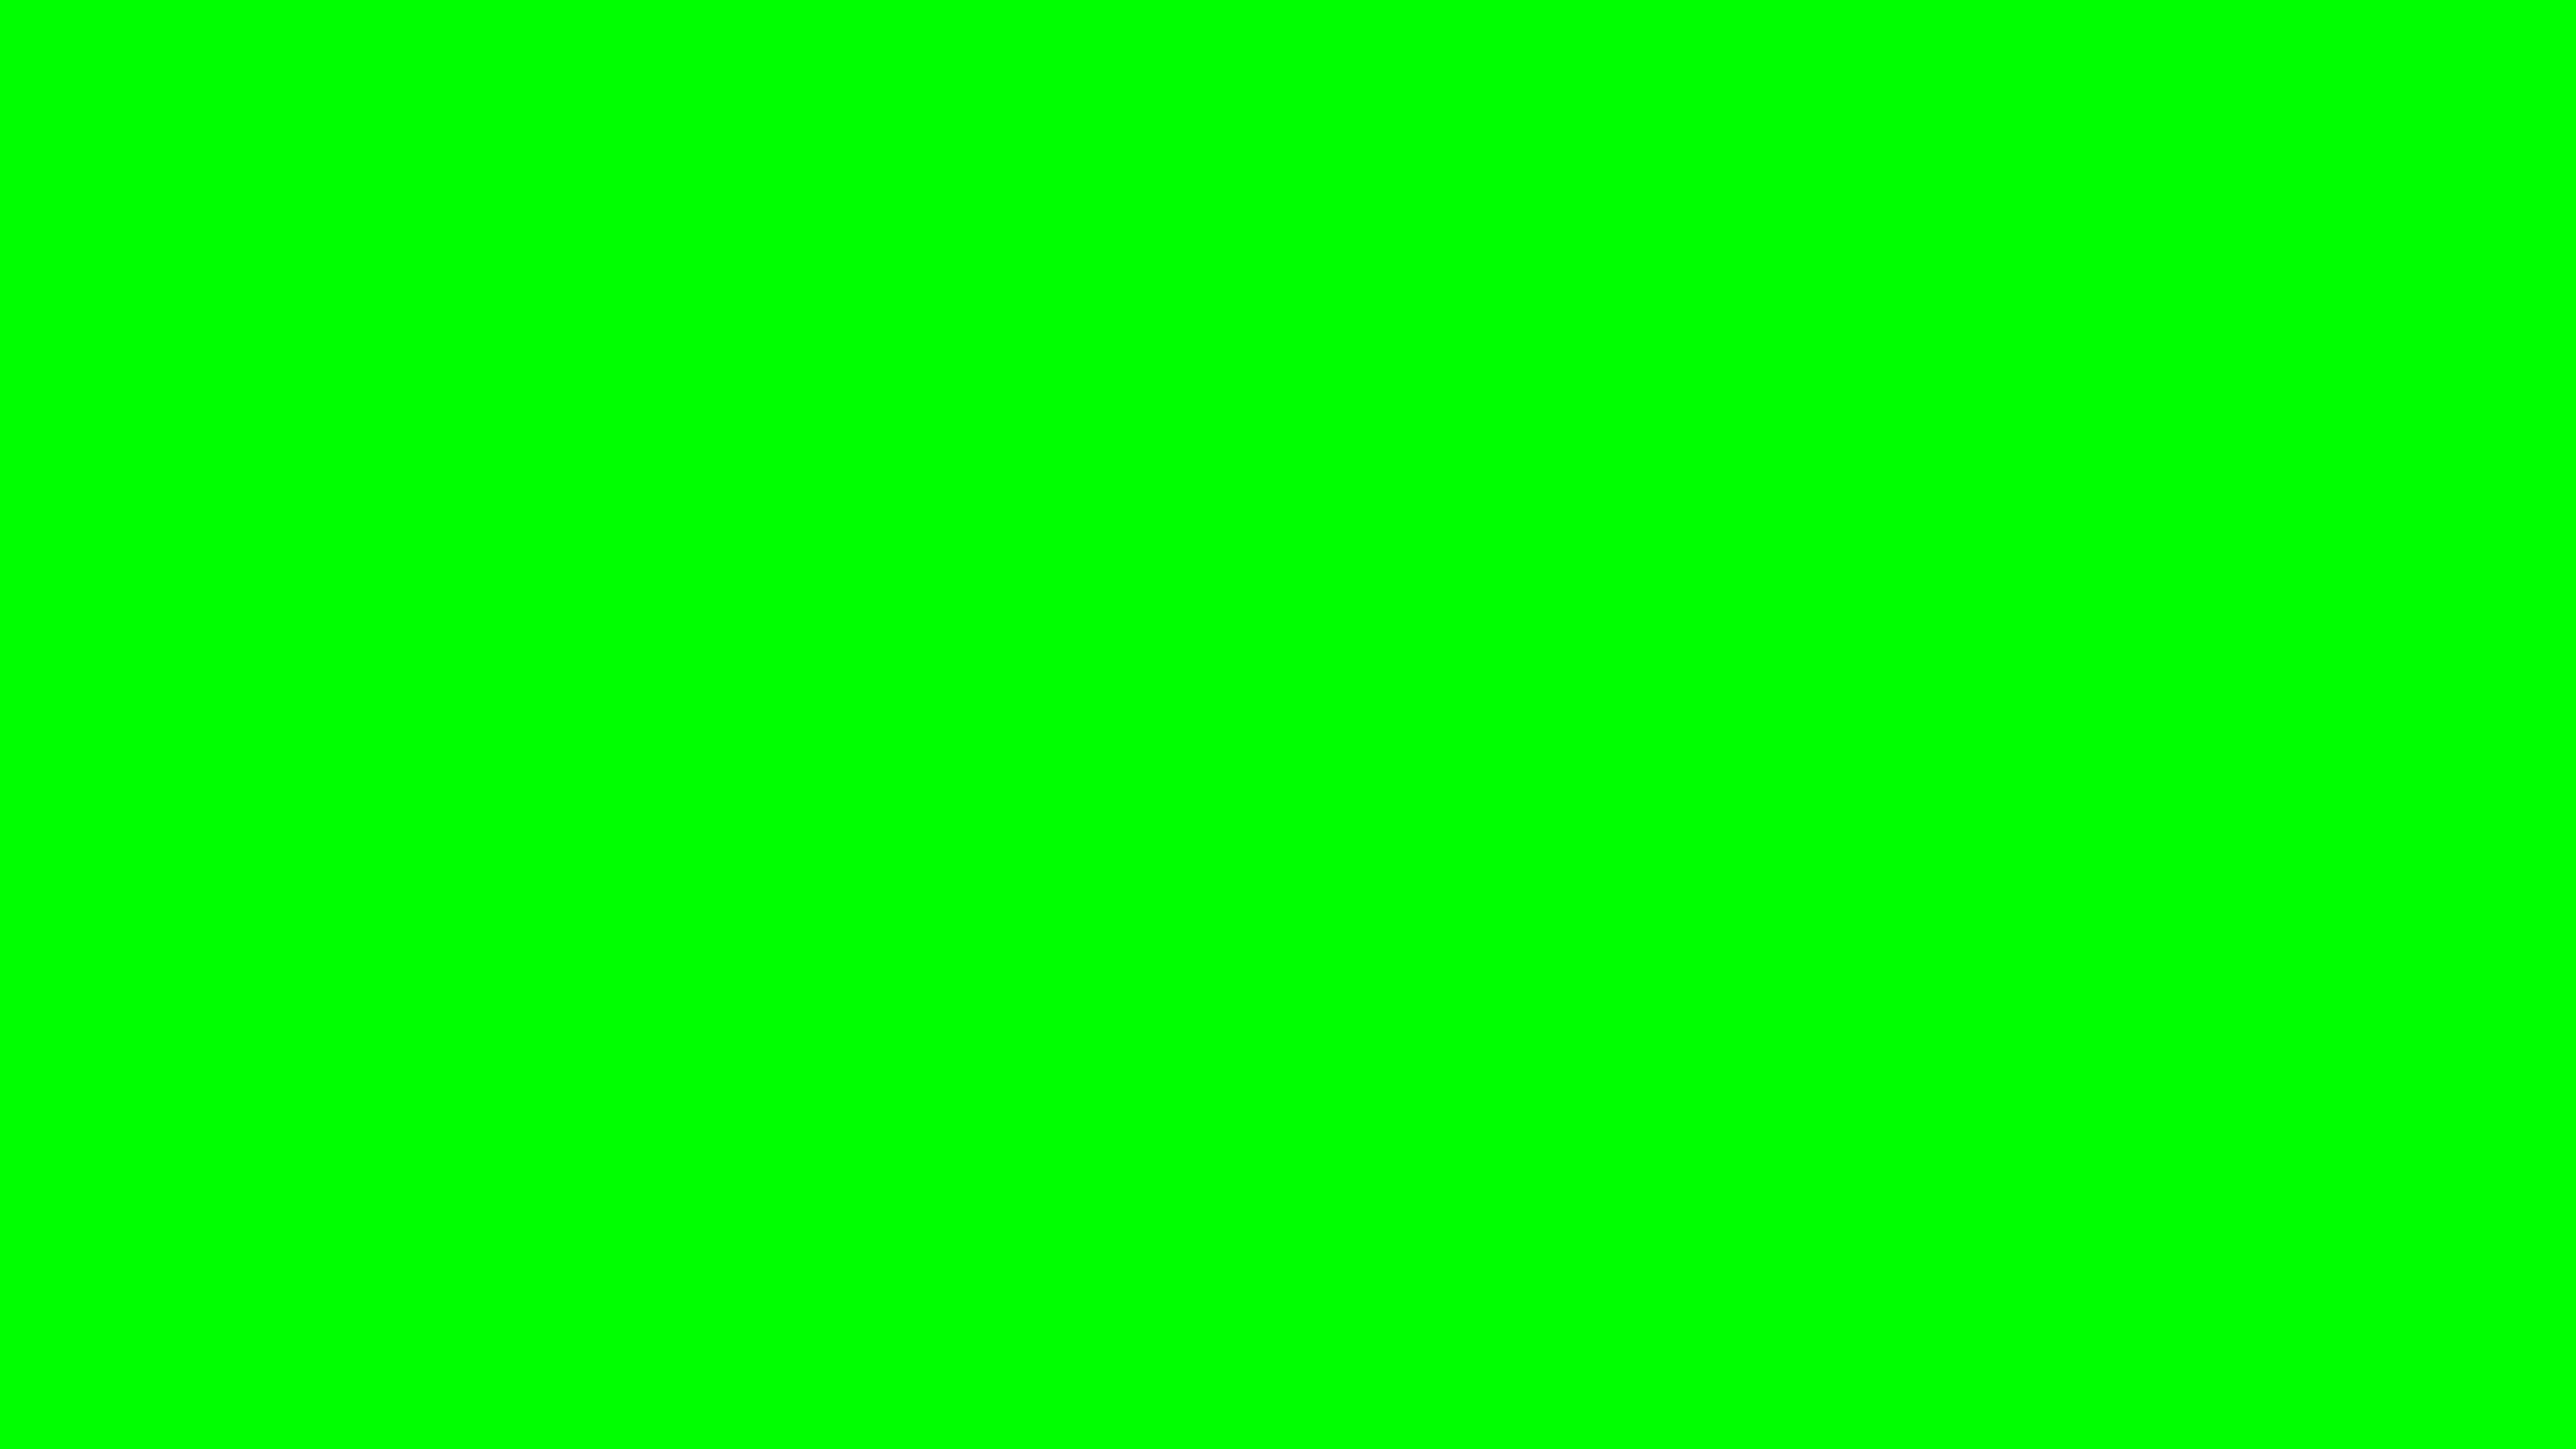 3840x2160 Electric Green Solid Color Background